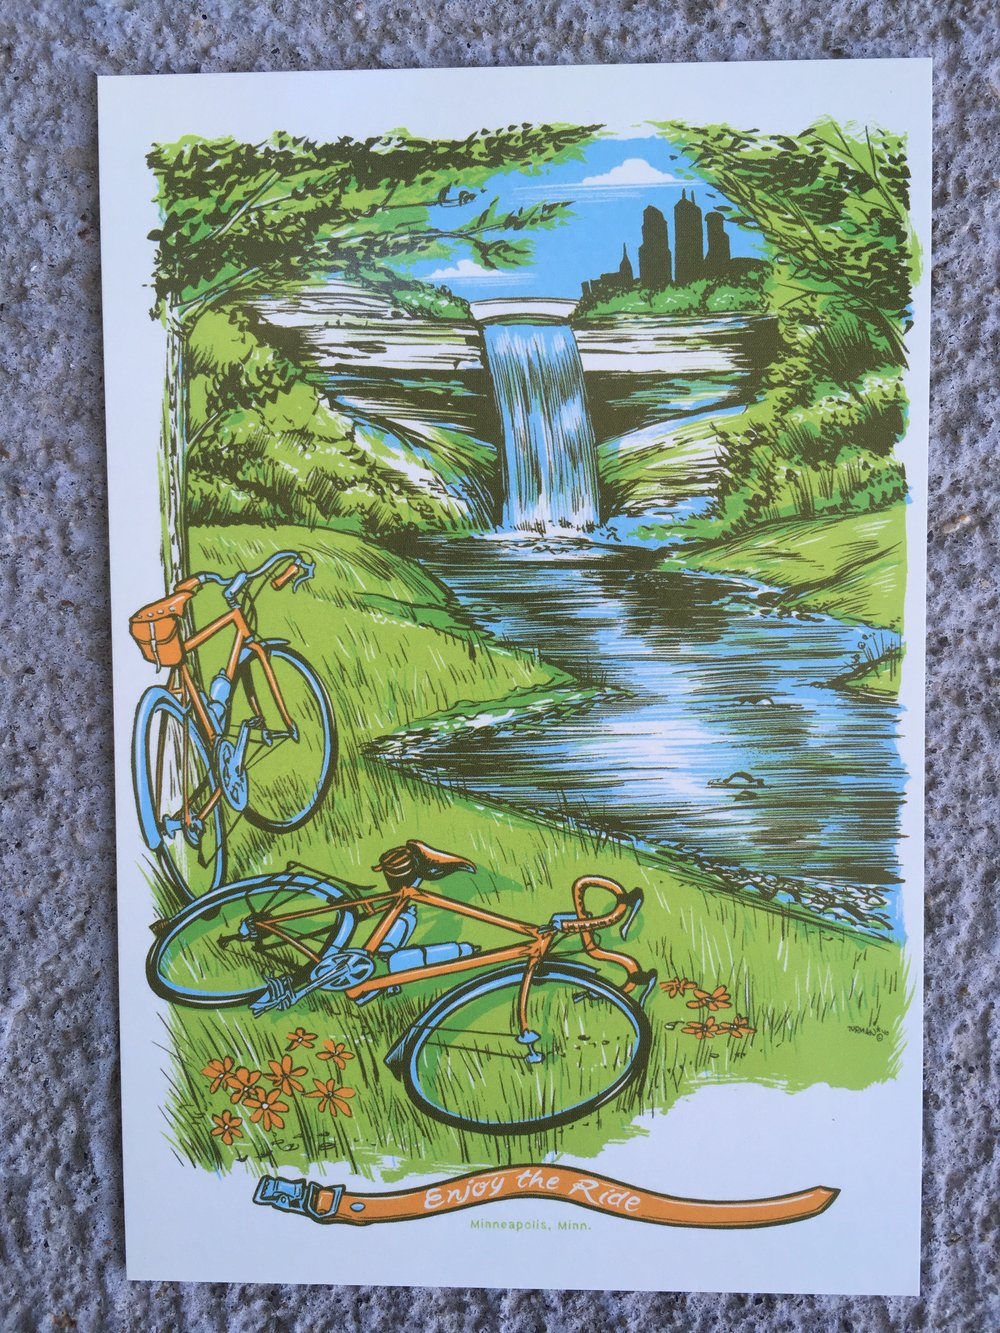 This one is titled Enjoy the Ride and depicts Minnehaha Falls.